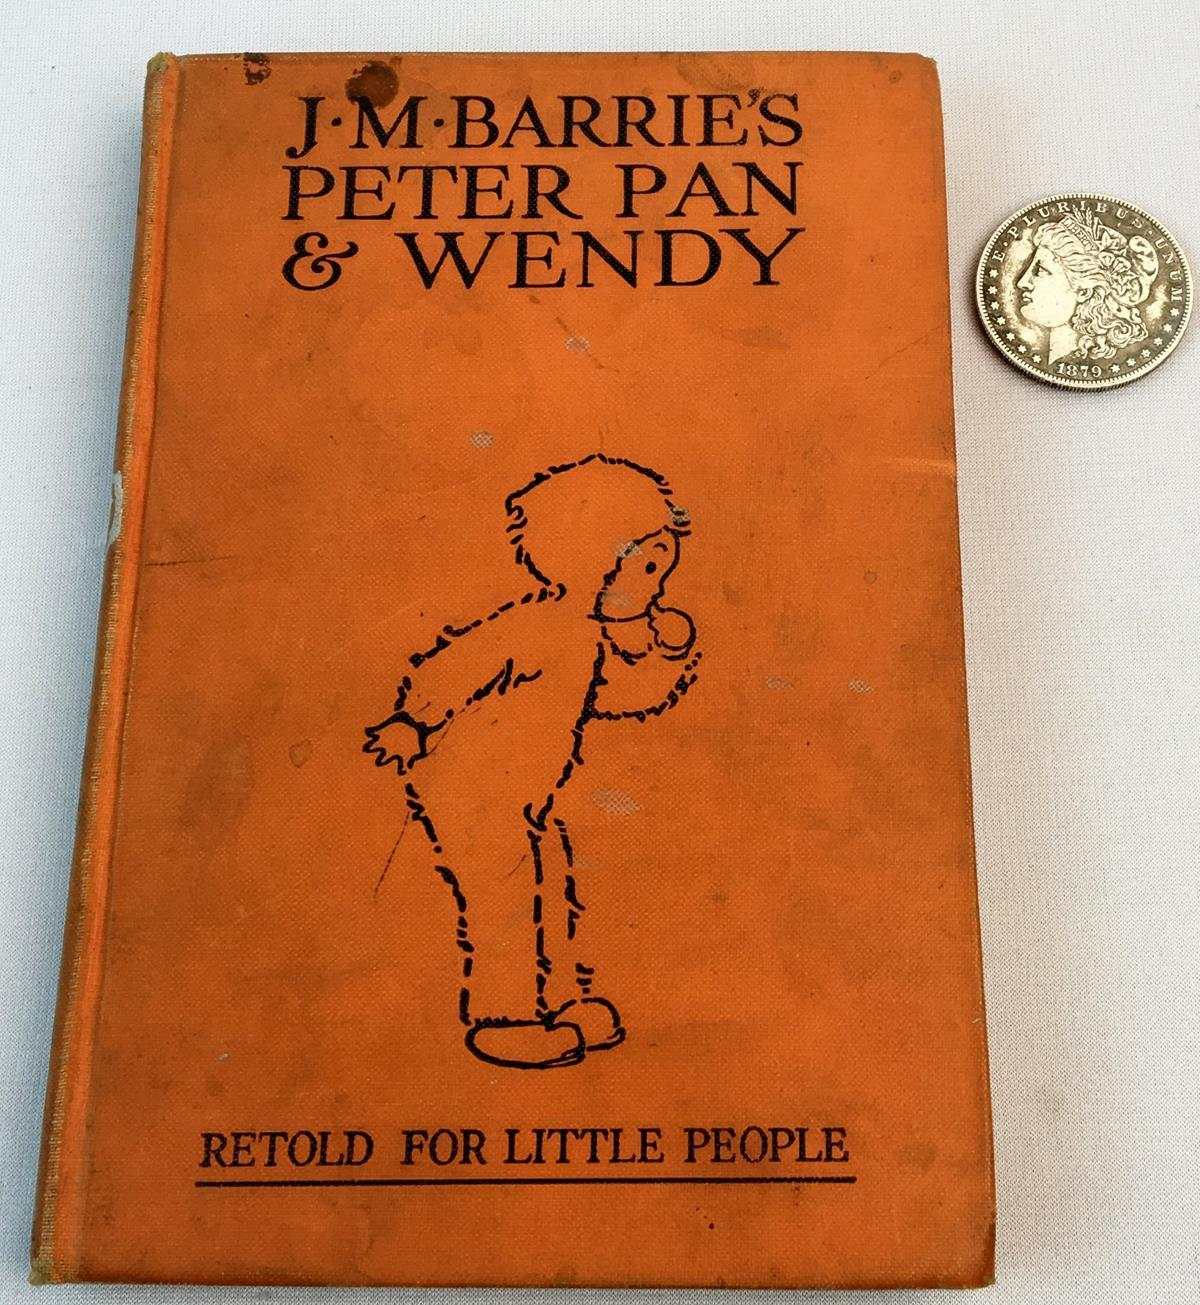 1929 Peter Pan & Wendy by J. M. Barrie ILLUSTRATED